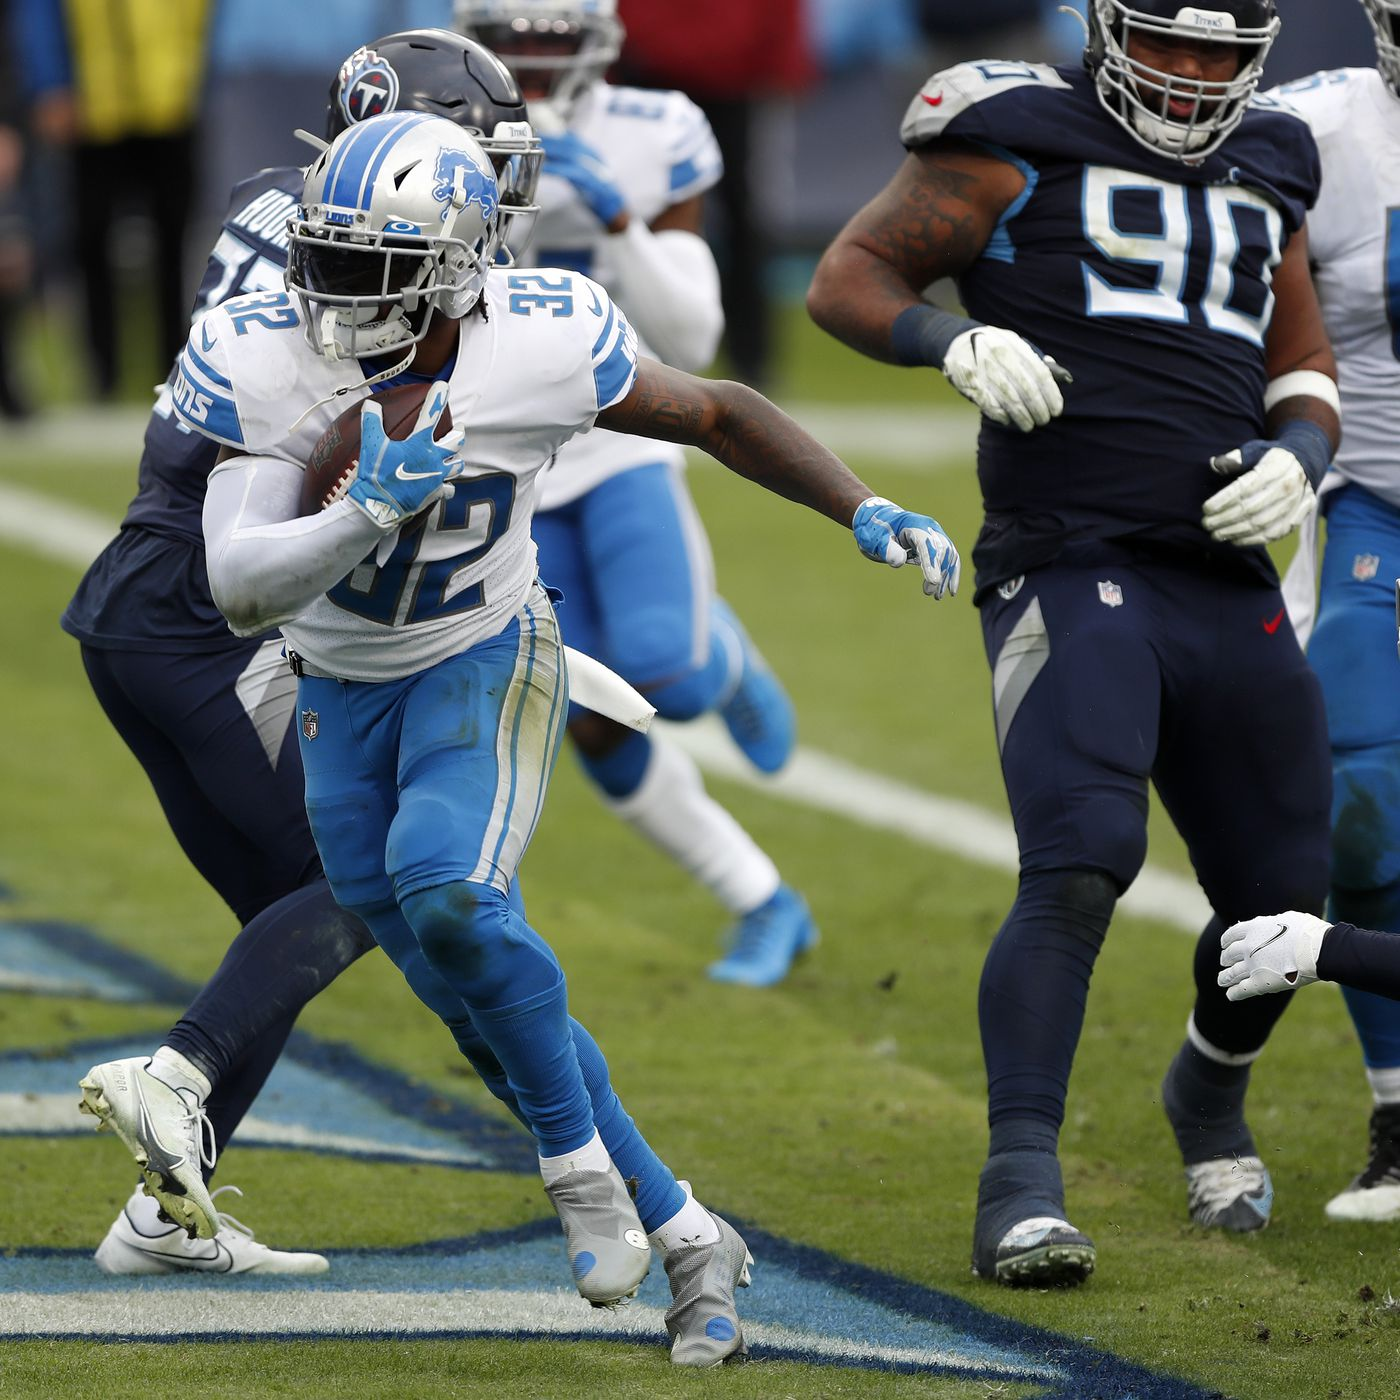 Nfl Draft Winners 5 Players Who Benefit Most From Detroit Lions 2021 Draft Pride Of Detroit